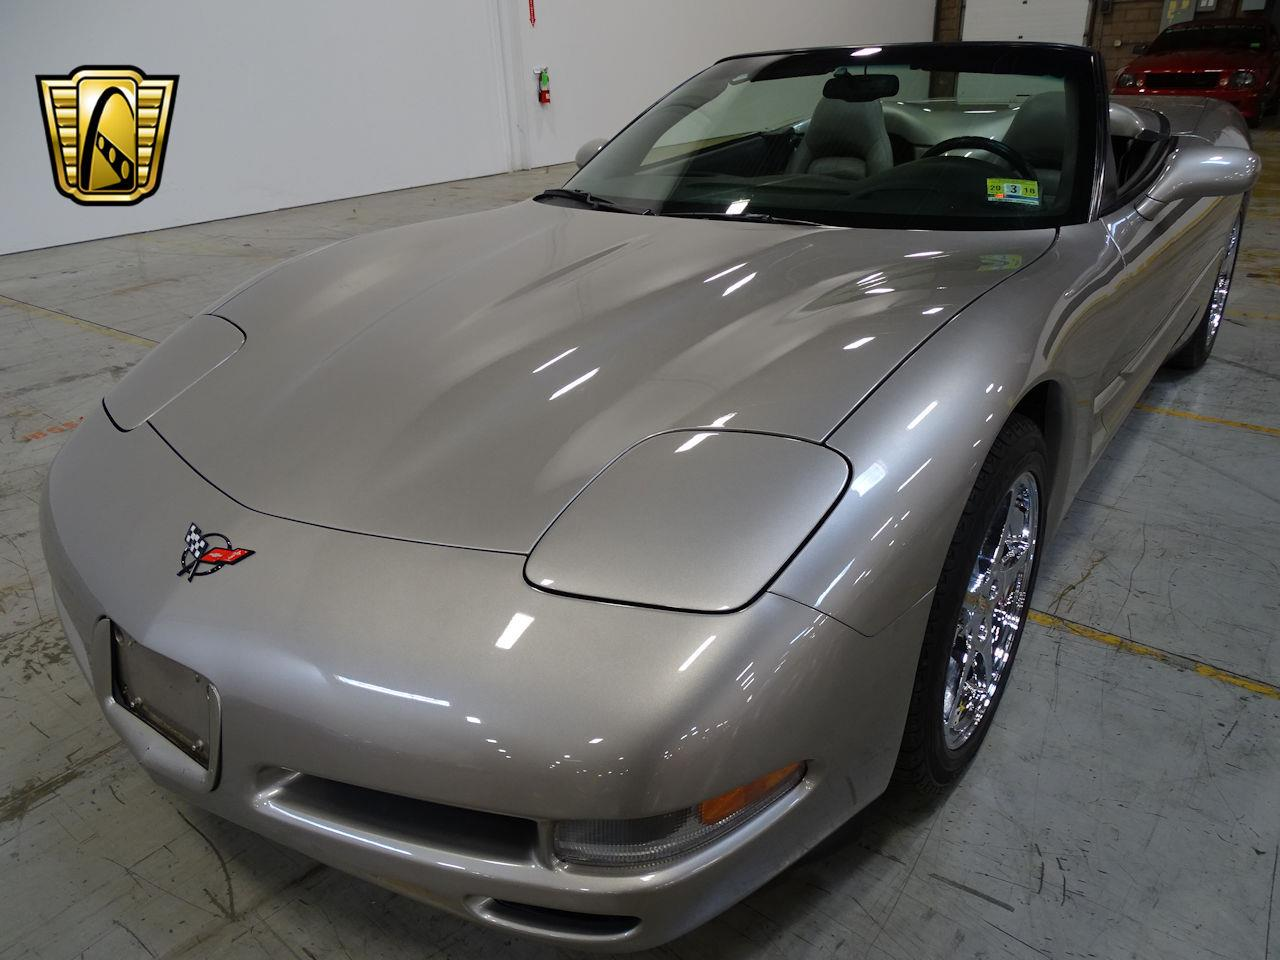 Large Picture of 1999 Chevrolet Corvette located in New Jersey - $20,995.00 Offered by Gateway Classic Cars - Philadelphia - MDHY